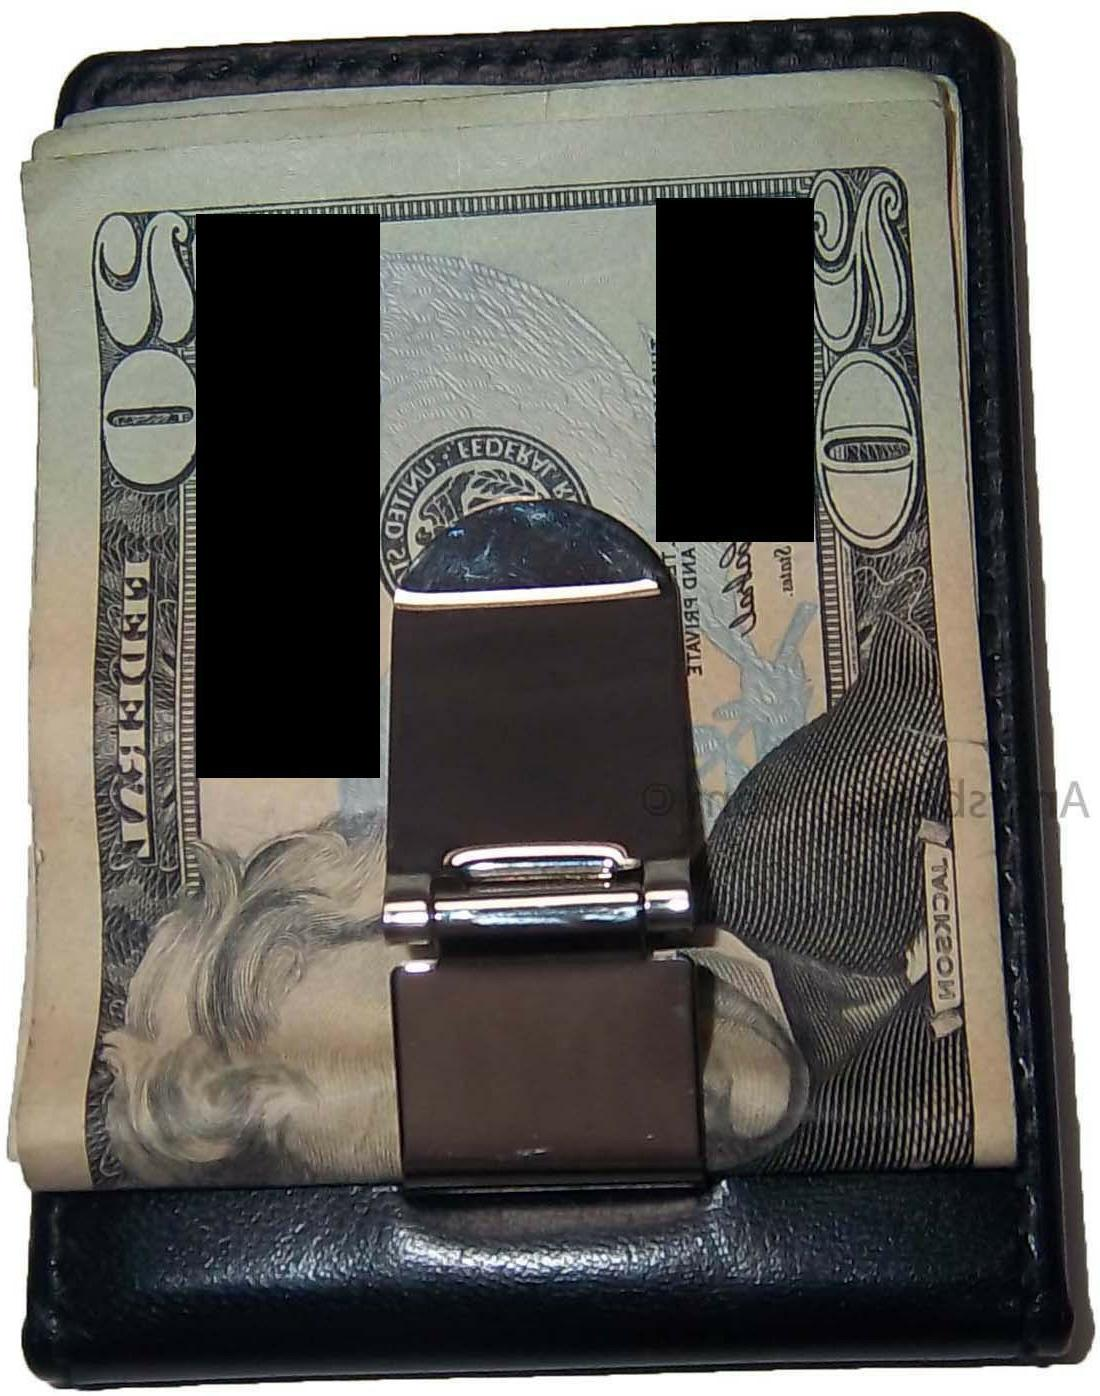 New Leather Money Clip 3 card 1 ID holder credit card holder